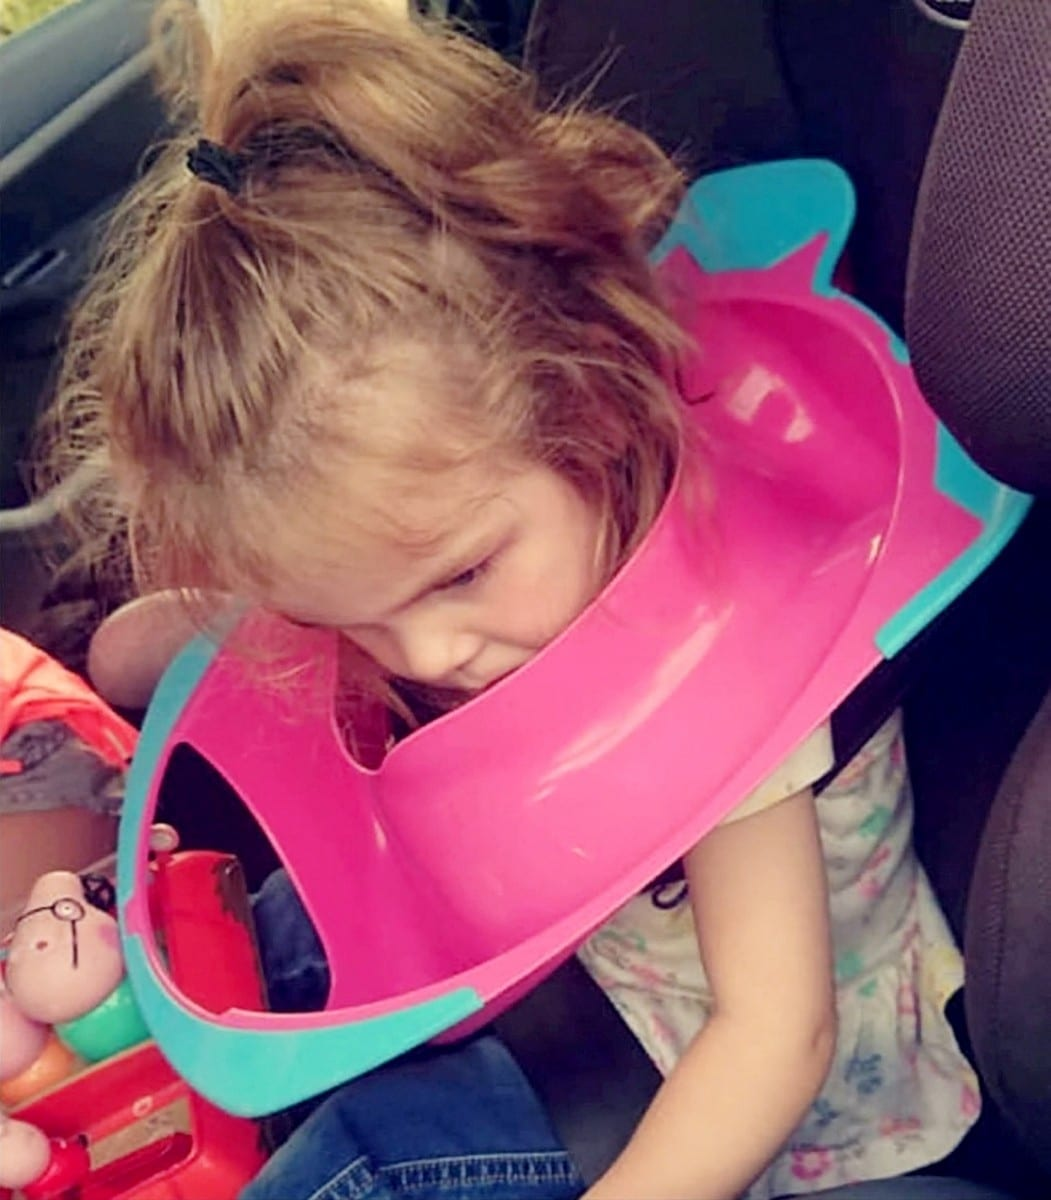 Dad Stunned When He Hears His Little Girl Shout While Going To The Toilet – Only To Discover She'd Got The POTTY Stuck On Her Head